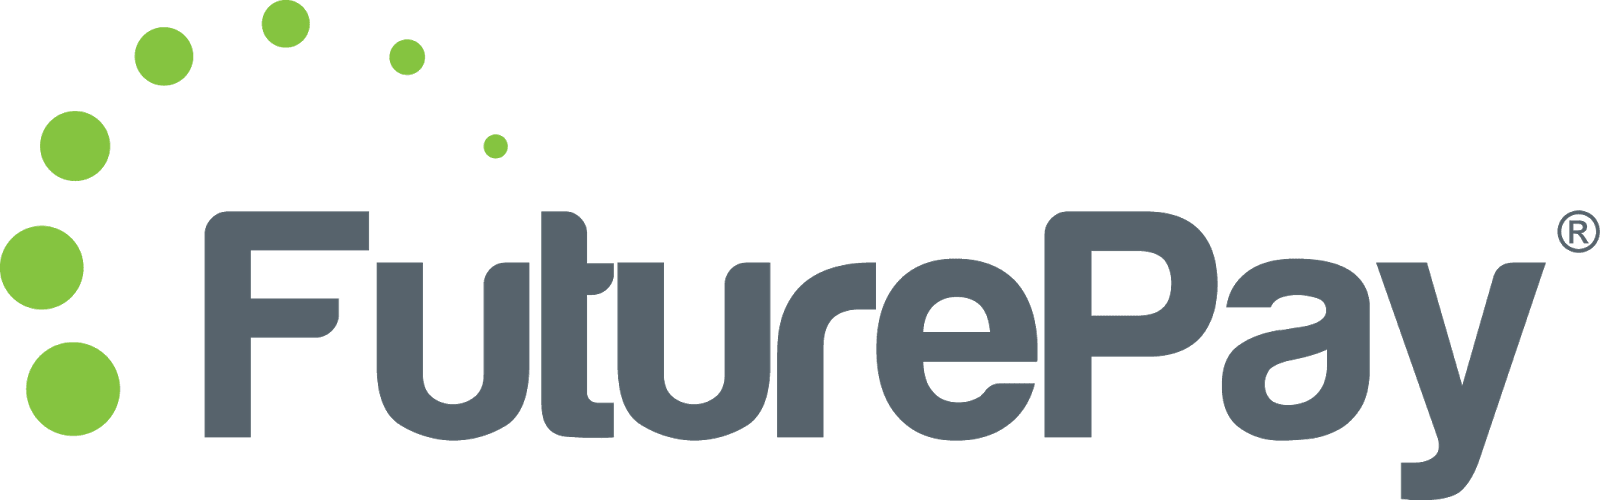 MEDICI now! The FuturePay Story